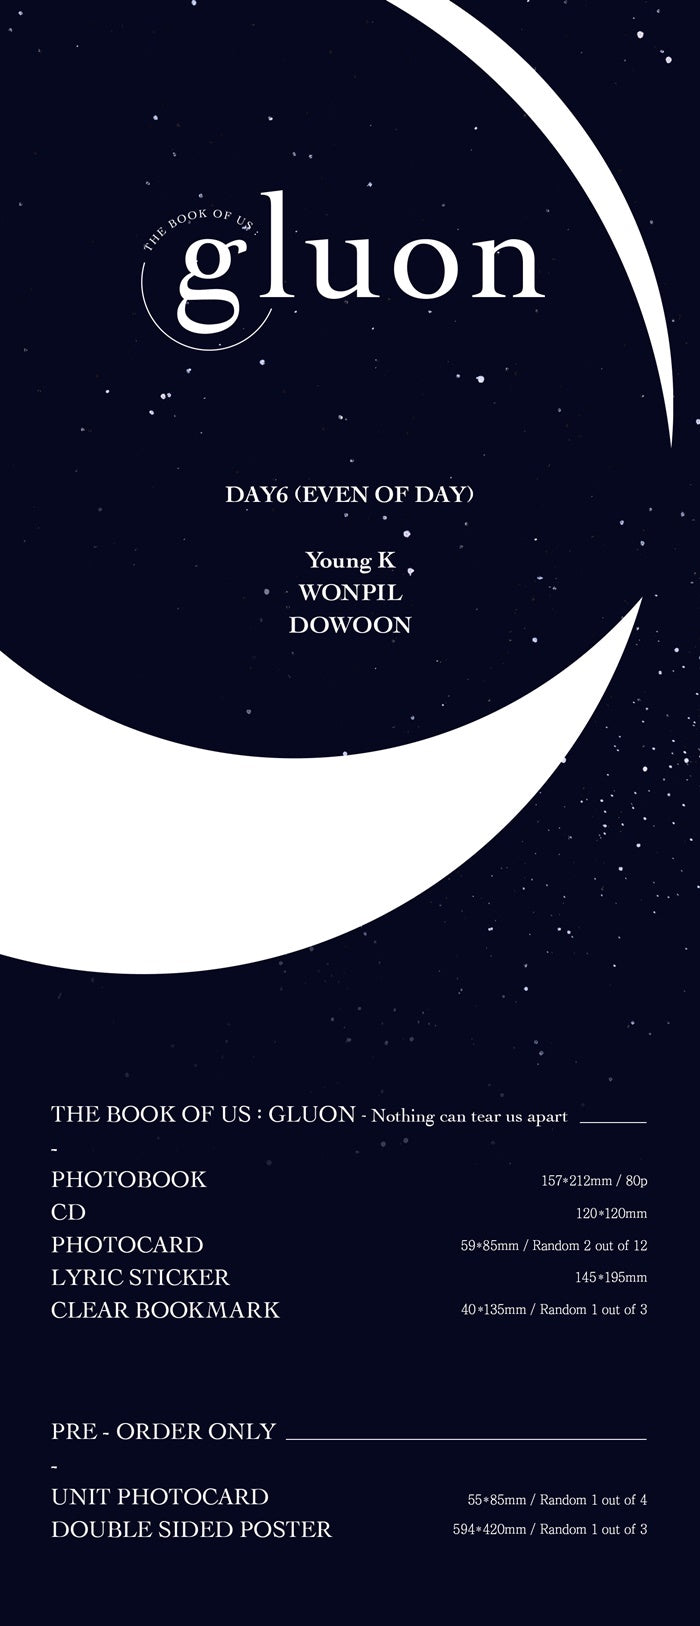 DAY6 - The Book Of Us: GLUON - Nothing Can Tear Us Apart